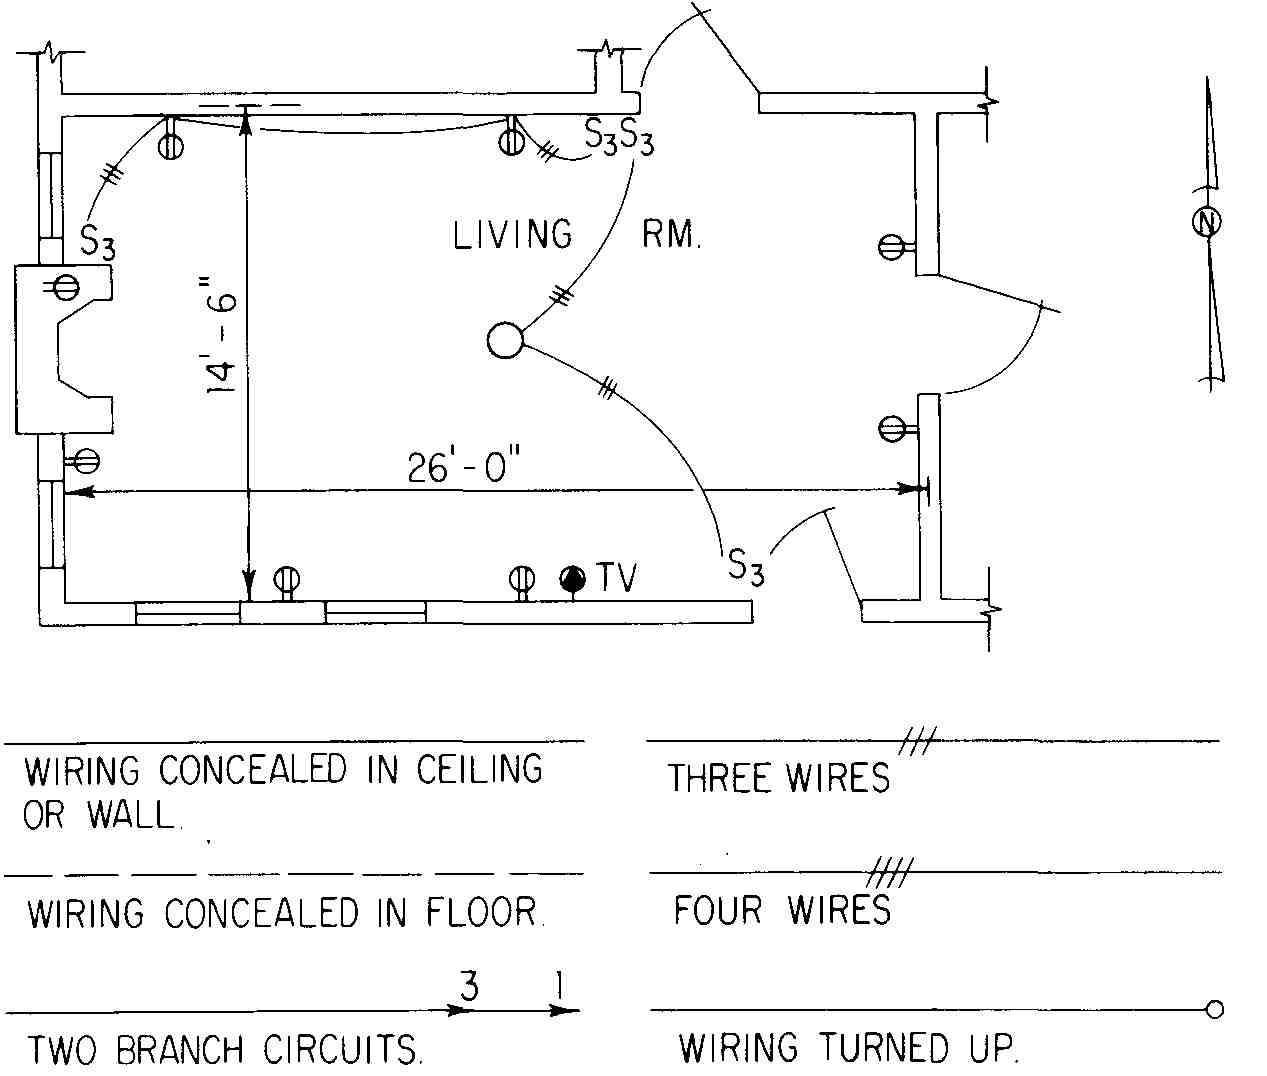 Electrical Drawing for Architectural Plans